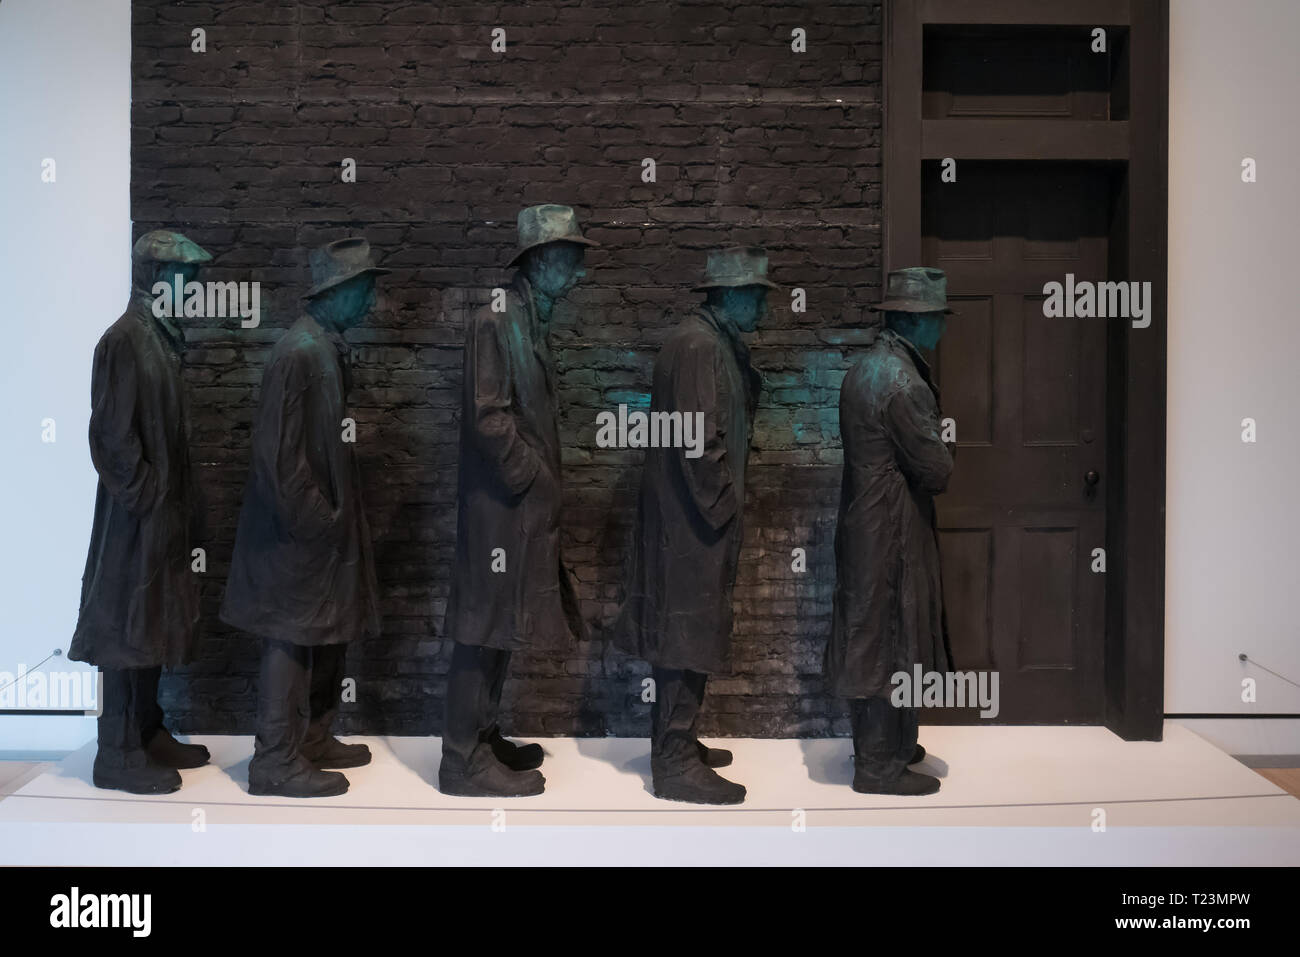 five figure represents americans waiting in line for assistance during the great US depression from 1929 to 1939, art work done by george segal, named - Stock Image